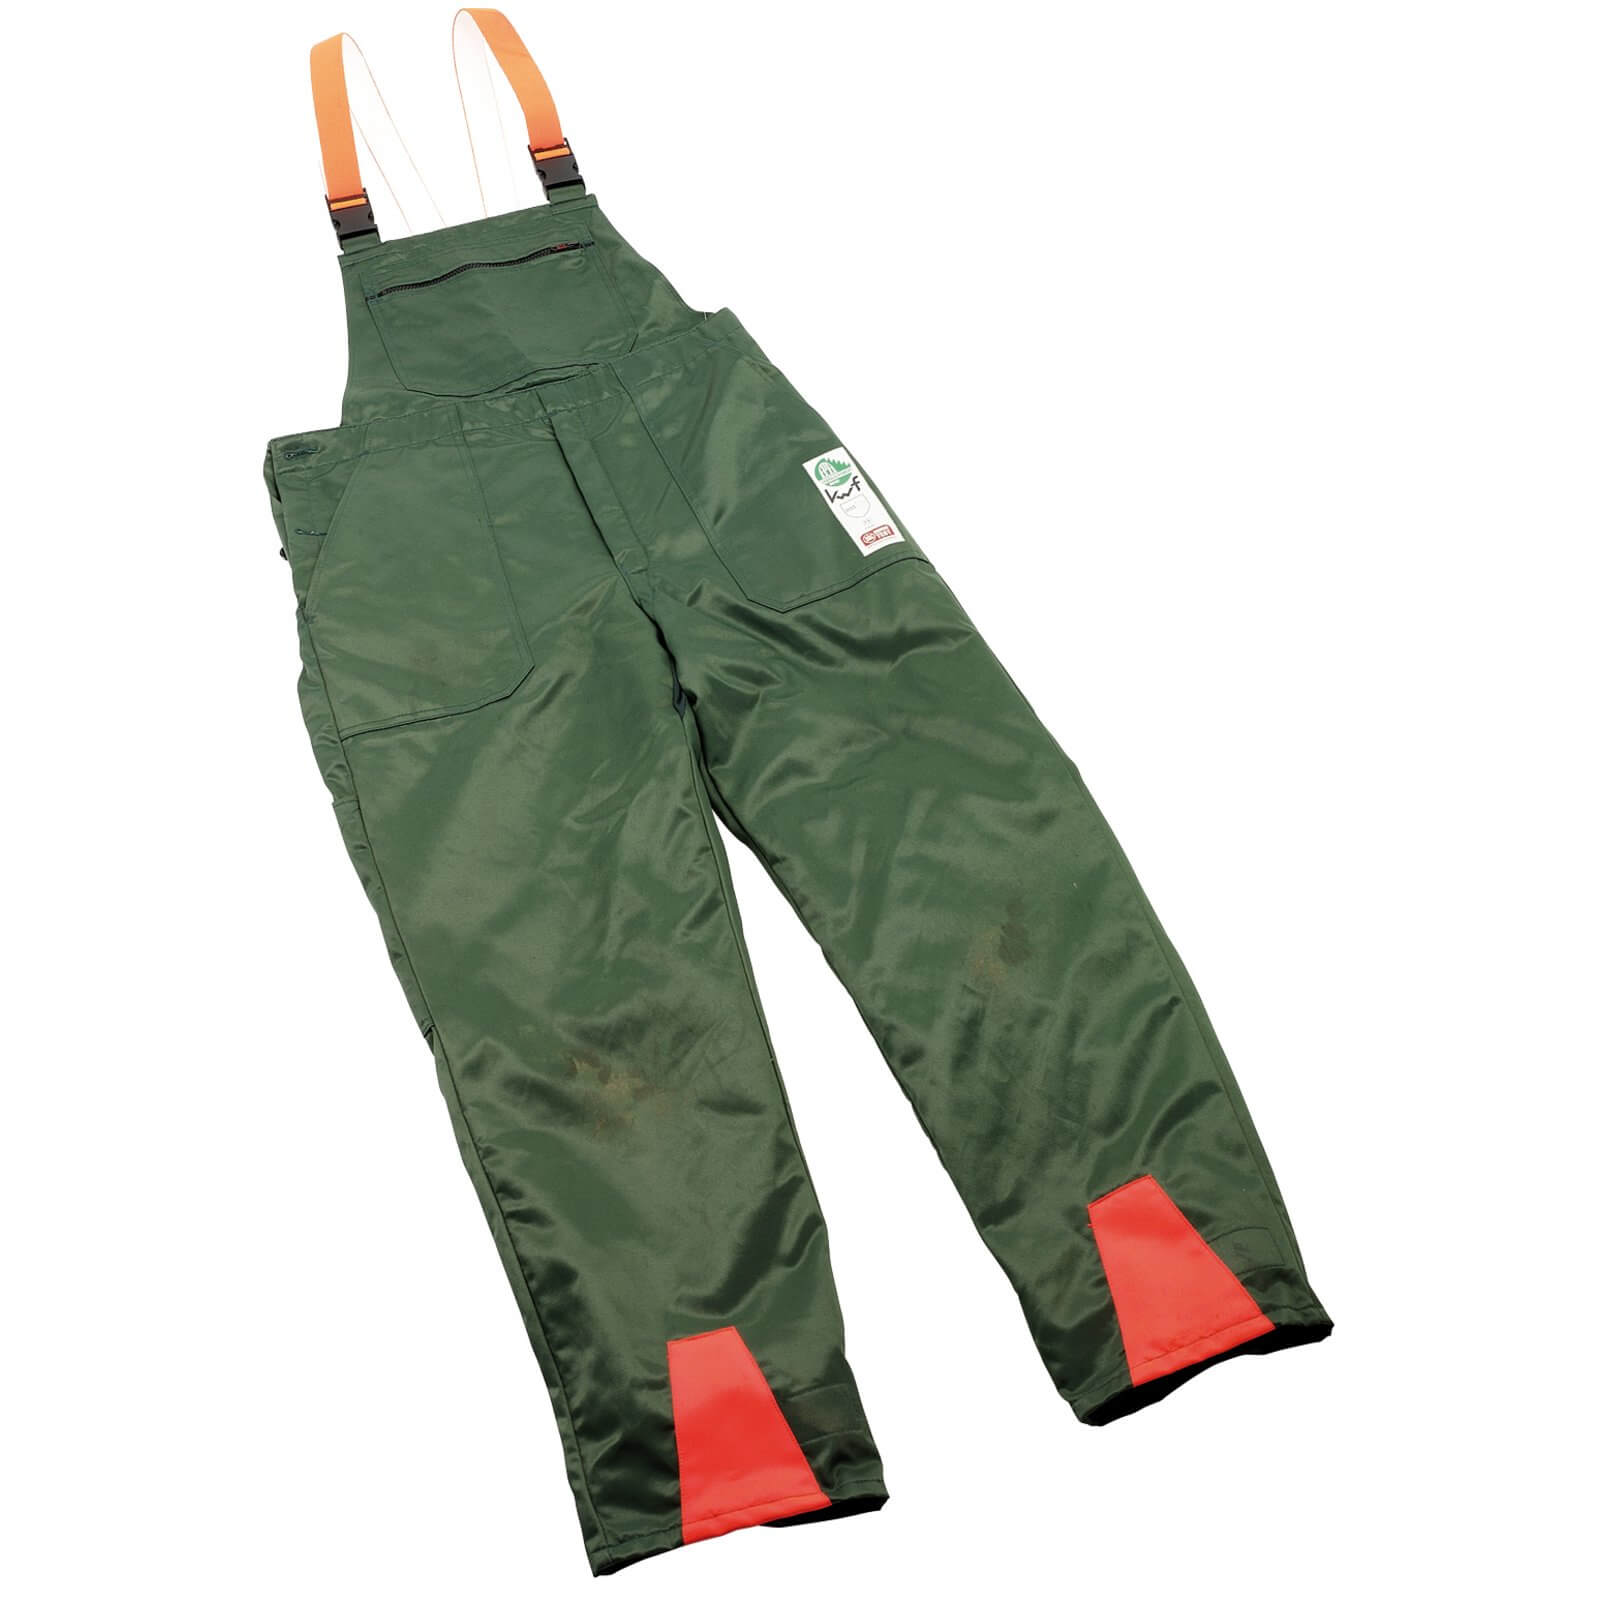 Image of Draper Expert Chainsaw Trousers Green / Orange L